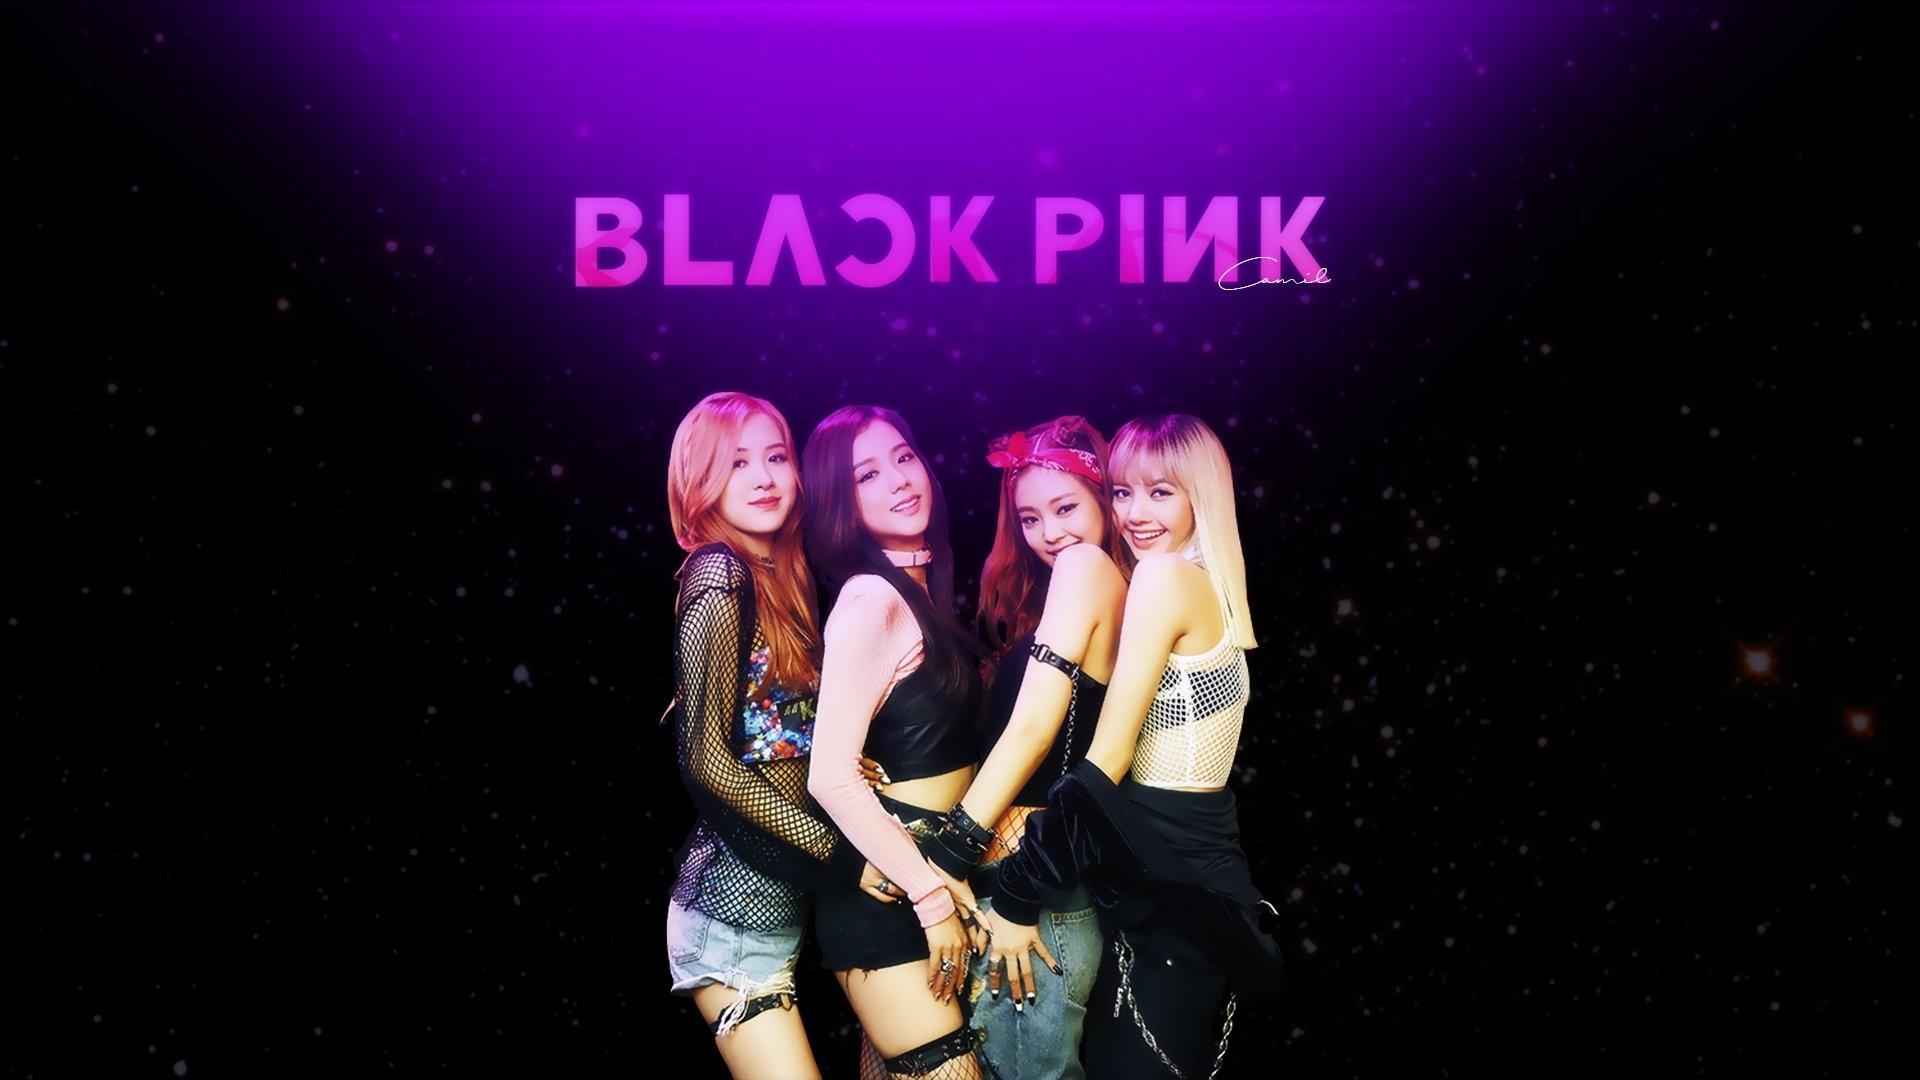 blackpink wallpaper hd download